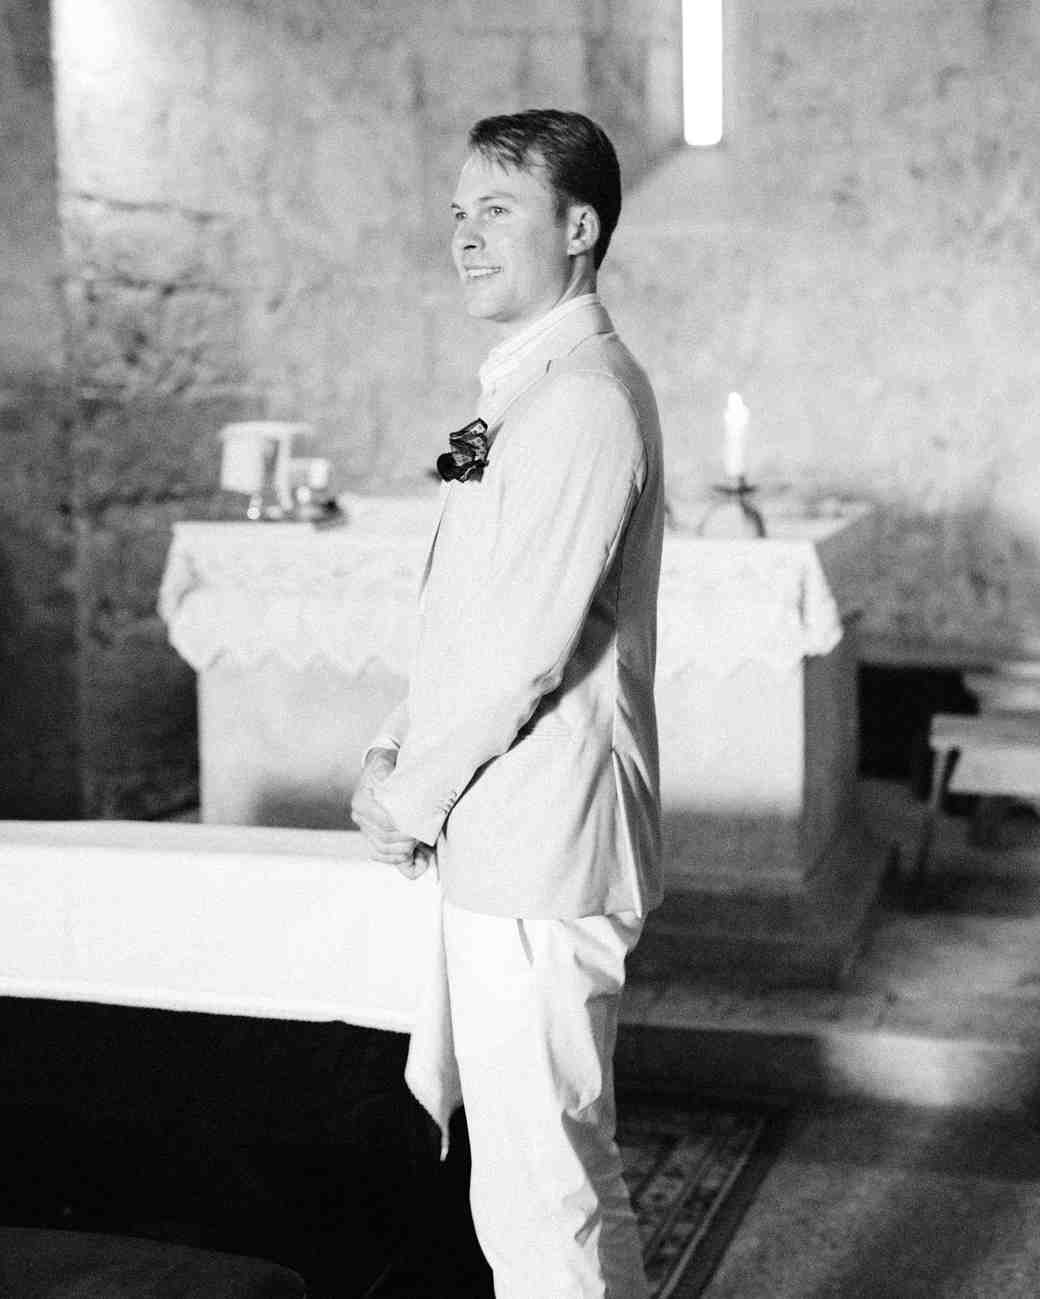 alexis zach wedding italy groom black white